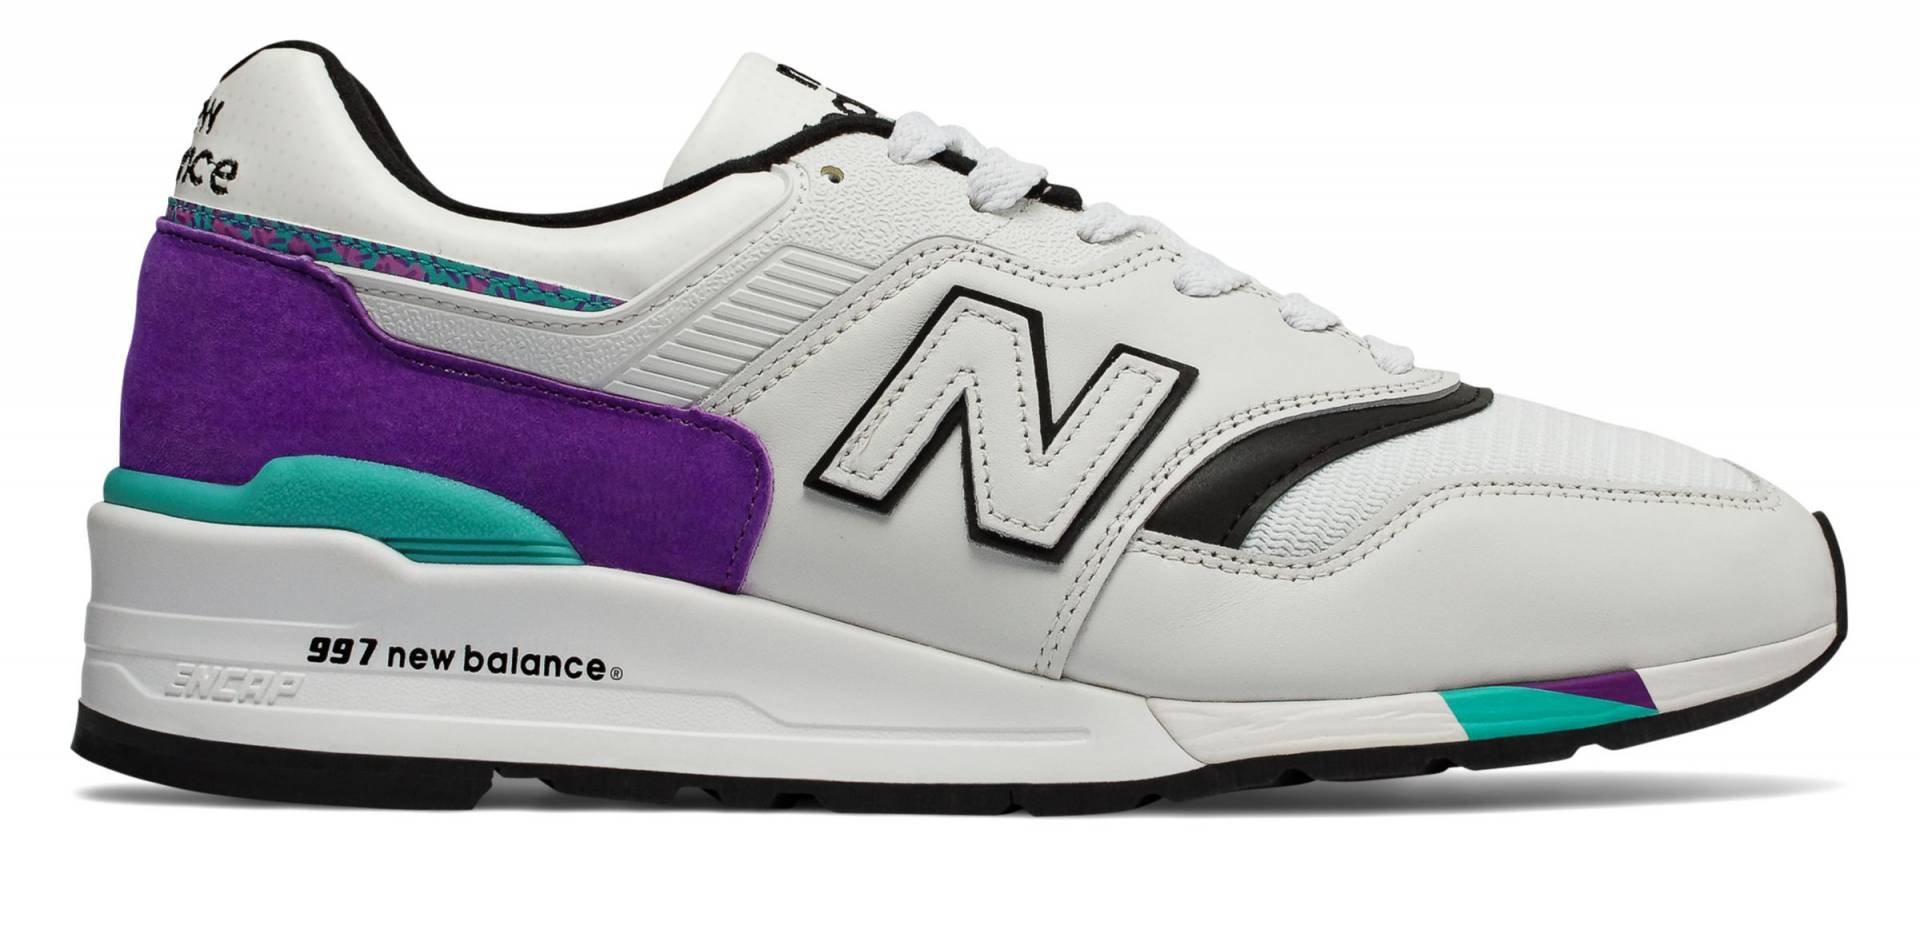 997 Made in US de Light Grey Marl with Purple